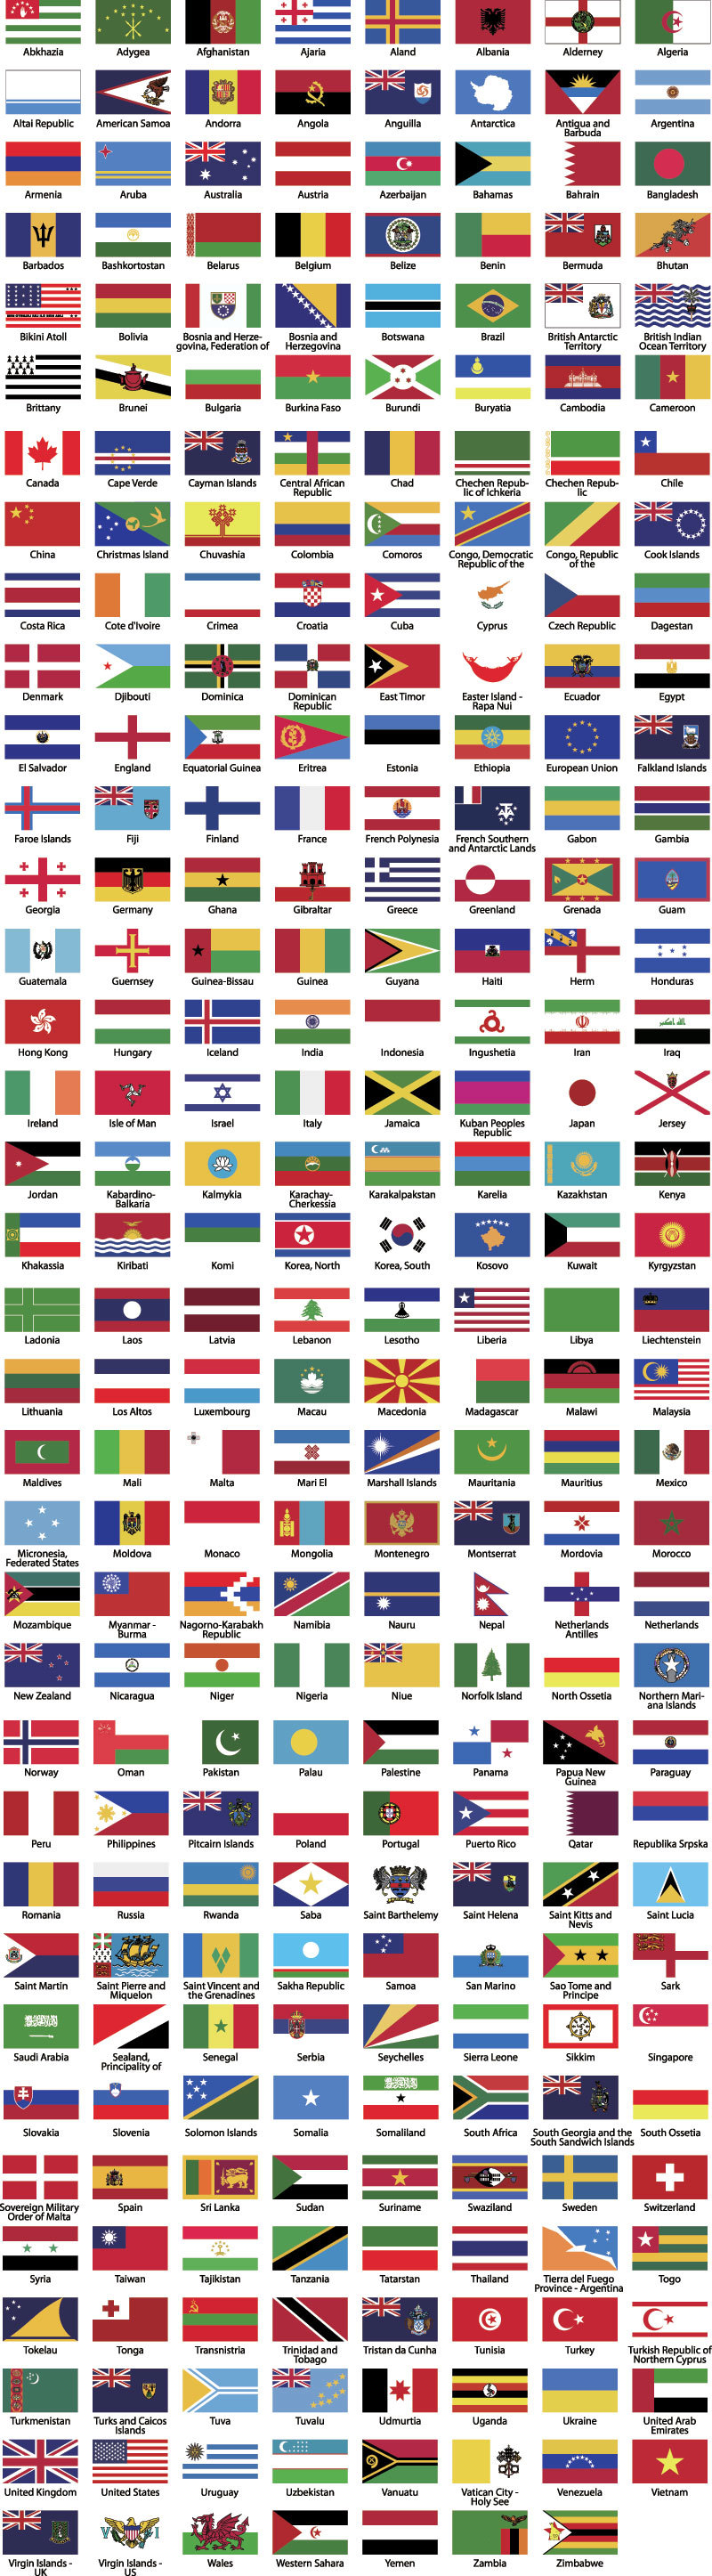 68e1fa68a635b964b36fdf47f4afbac6 free world flags vector